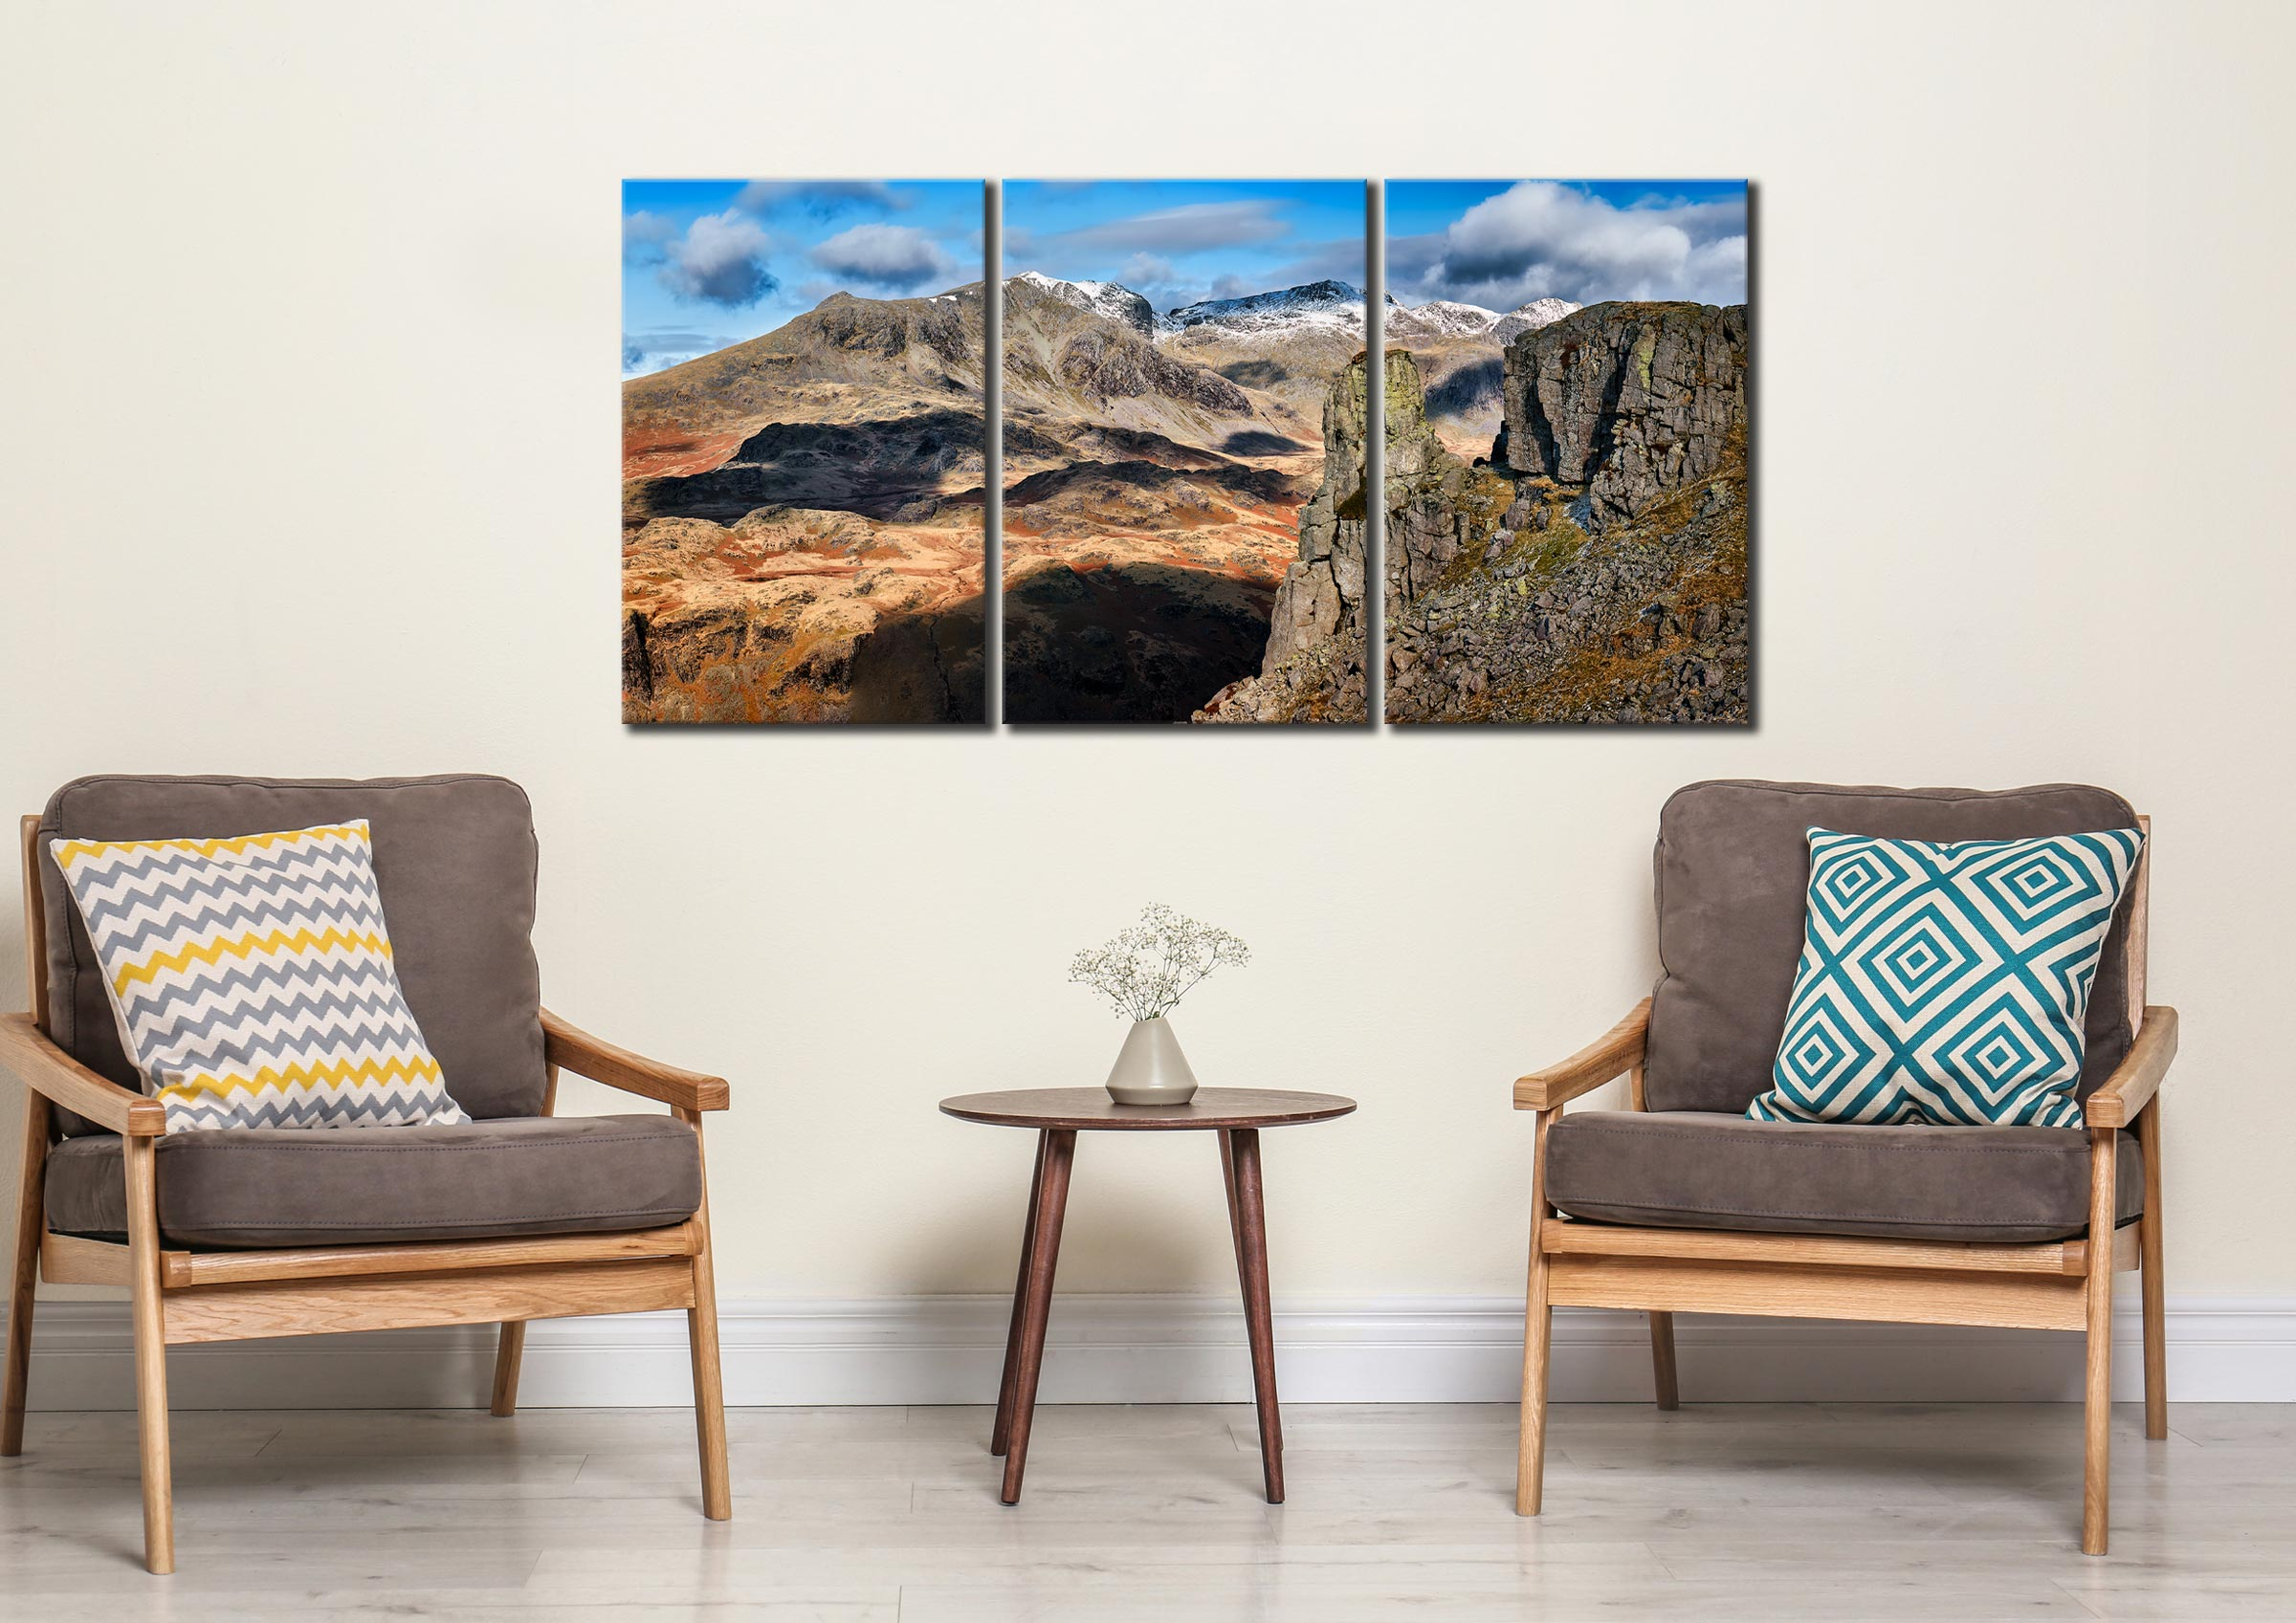 Eskdale Needle and Scafell Mountains - 3 Panel Canvas on Wall